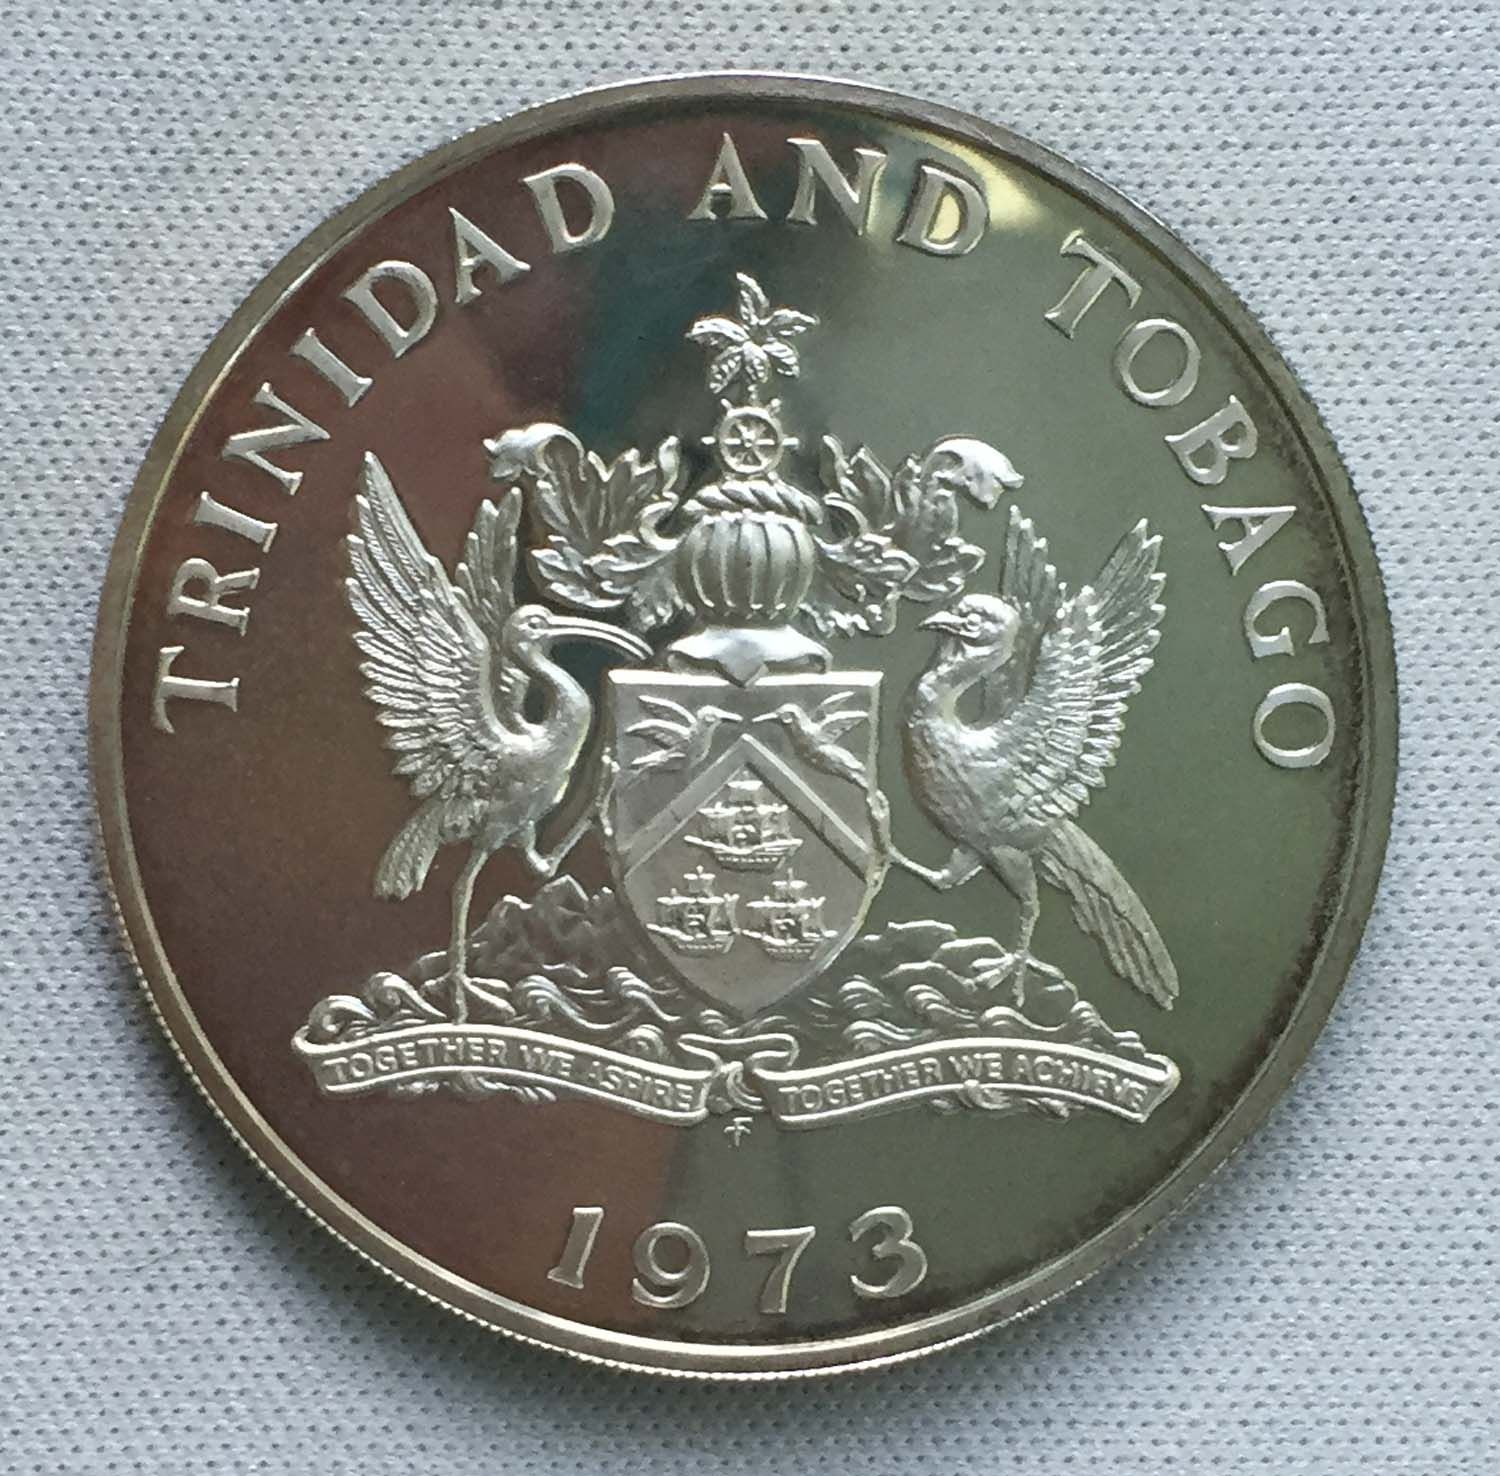 1973 Trinidad And Tobago 5 Dollars 925 Silver Coin